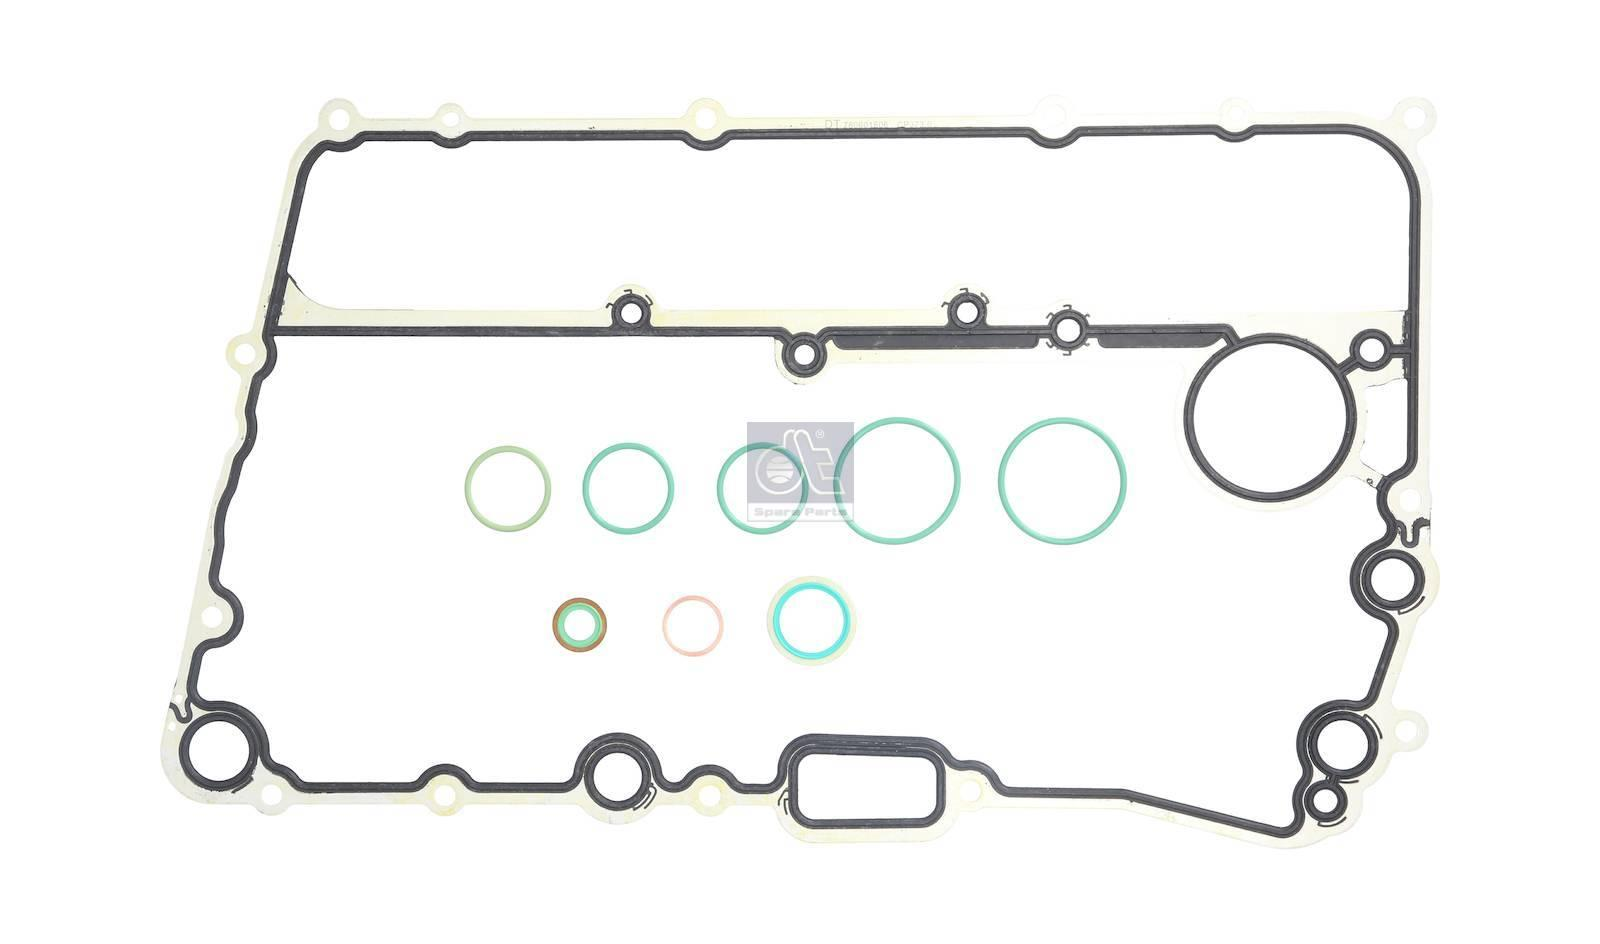 Oil cooler seal 1.31166 DT — only new parts